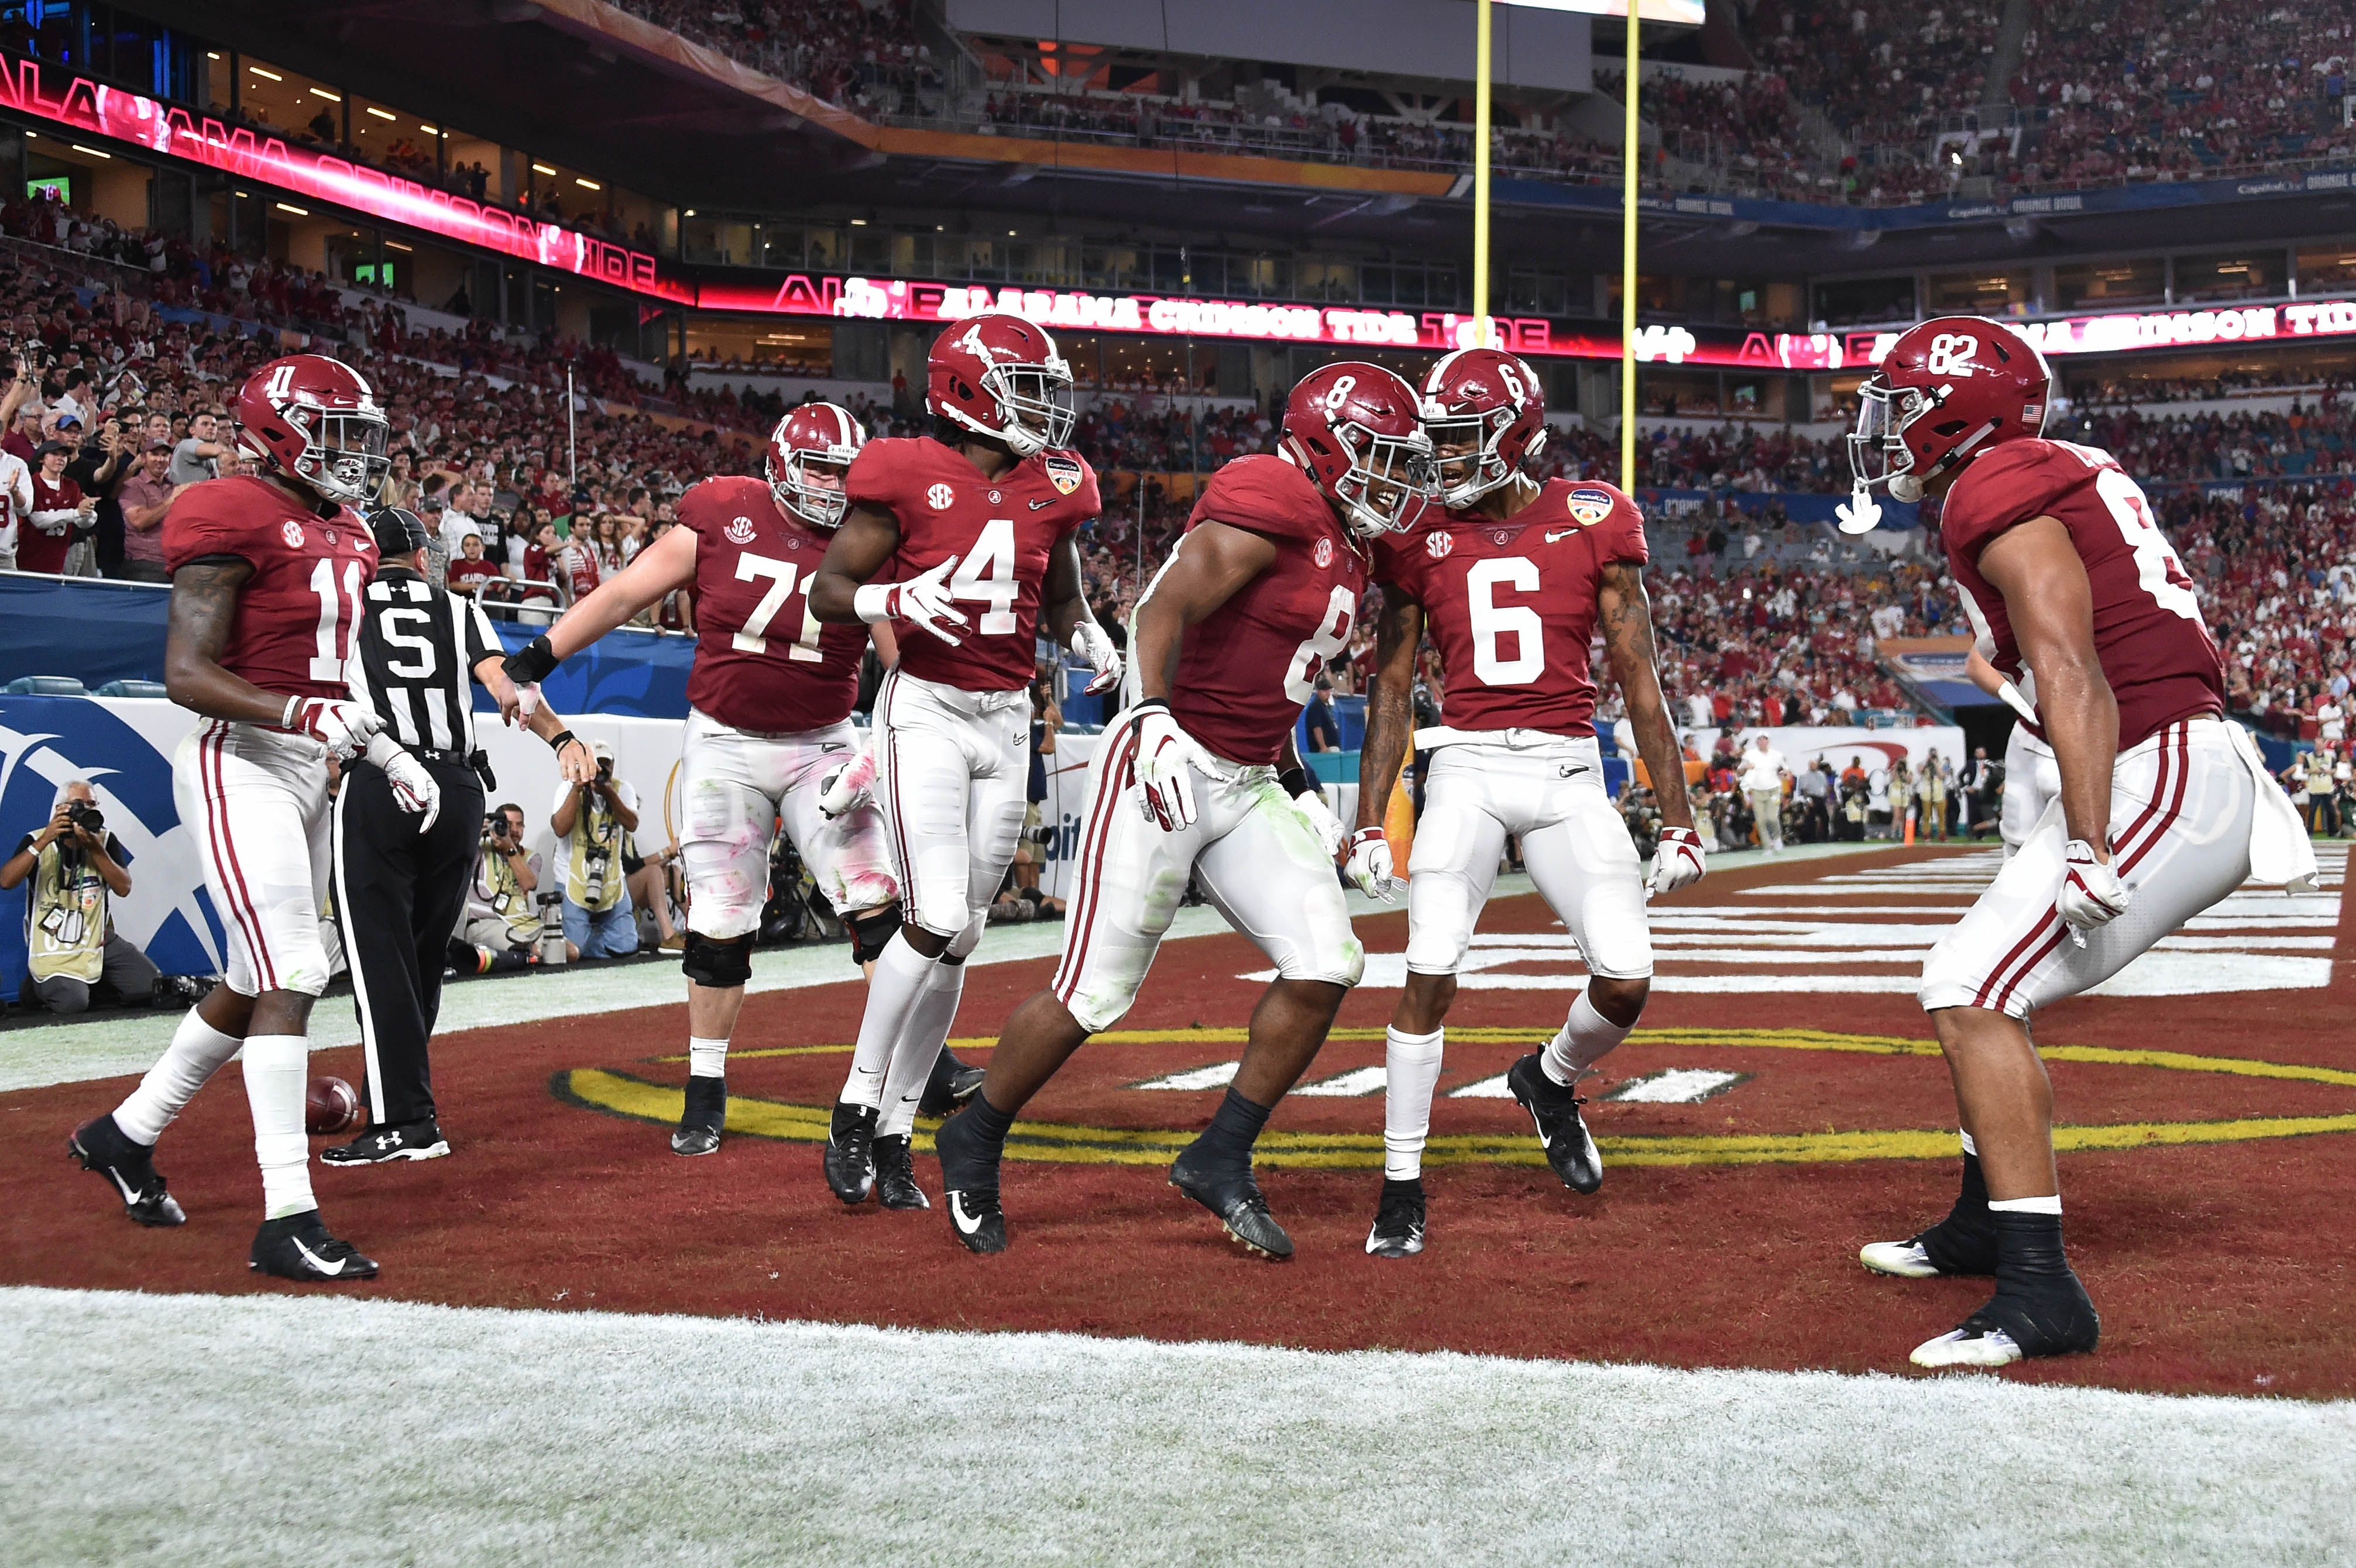 Alabama returns to title game after beating Oklahoma in Orange Bowl